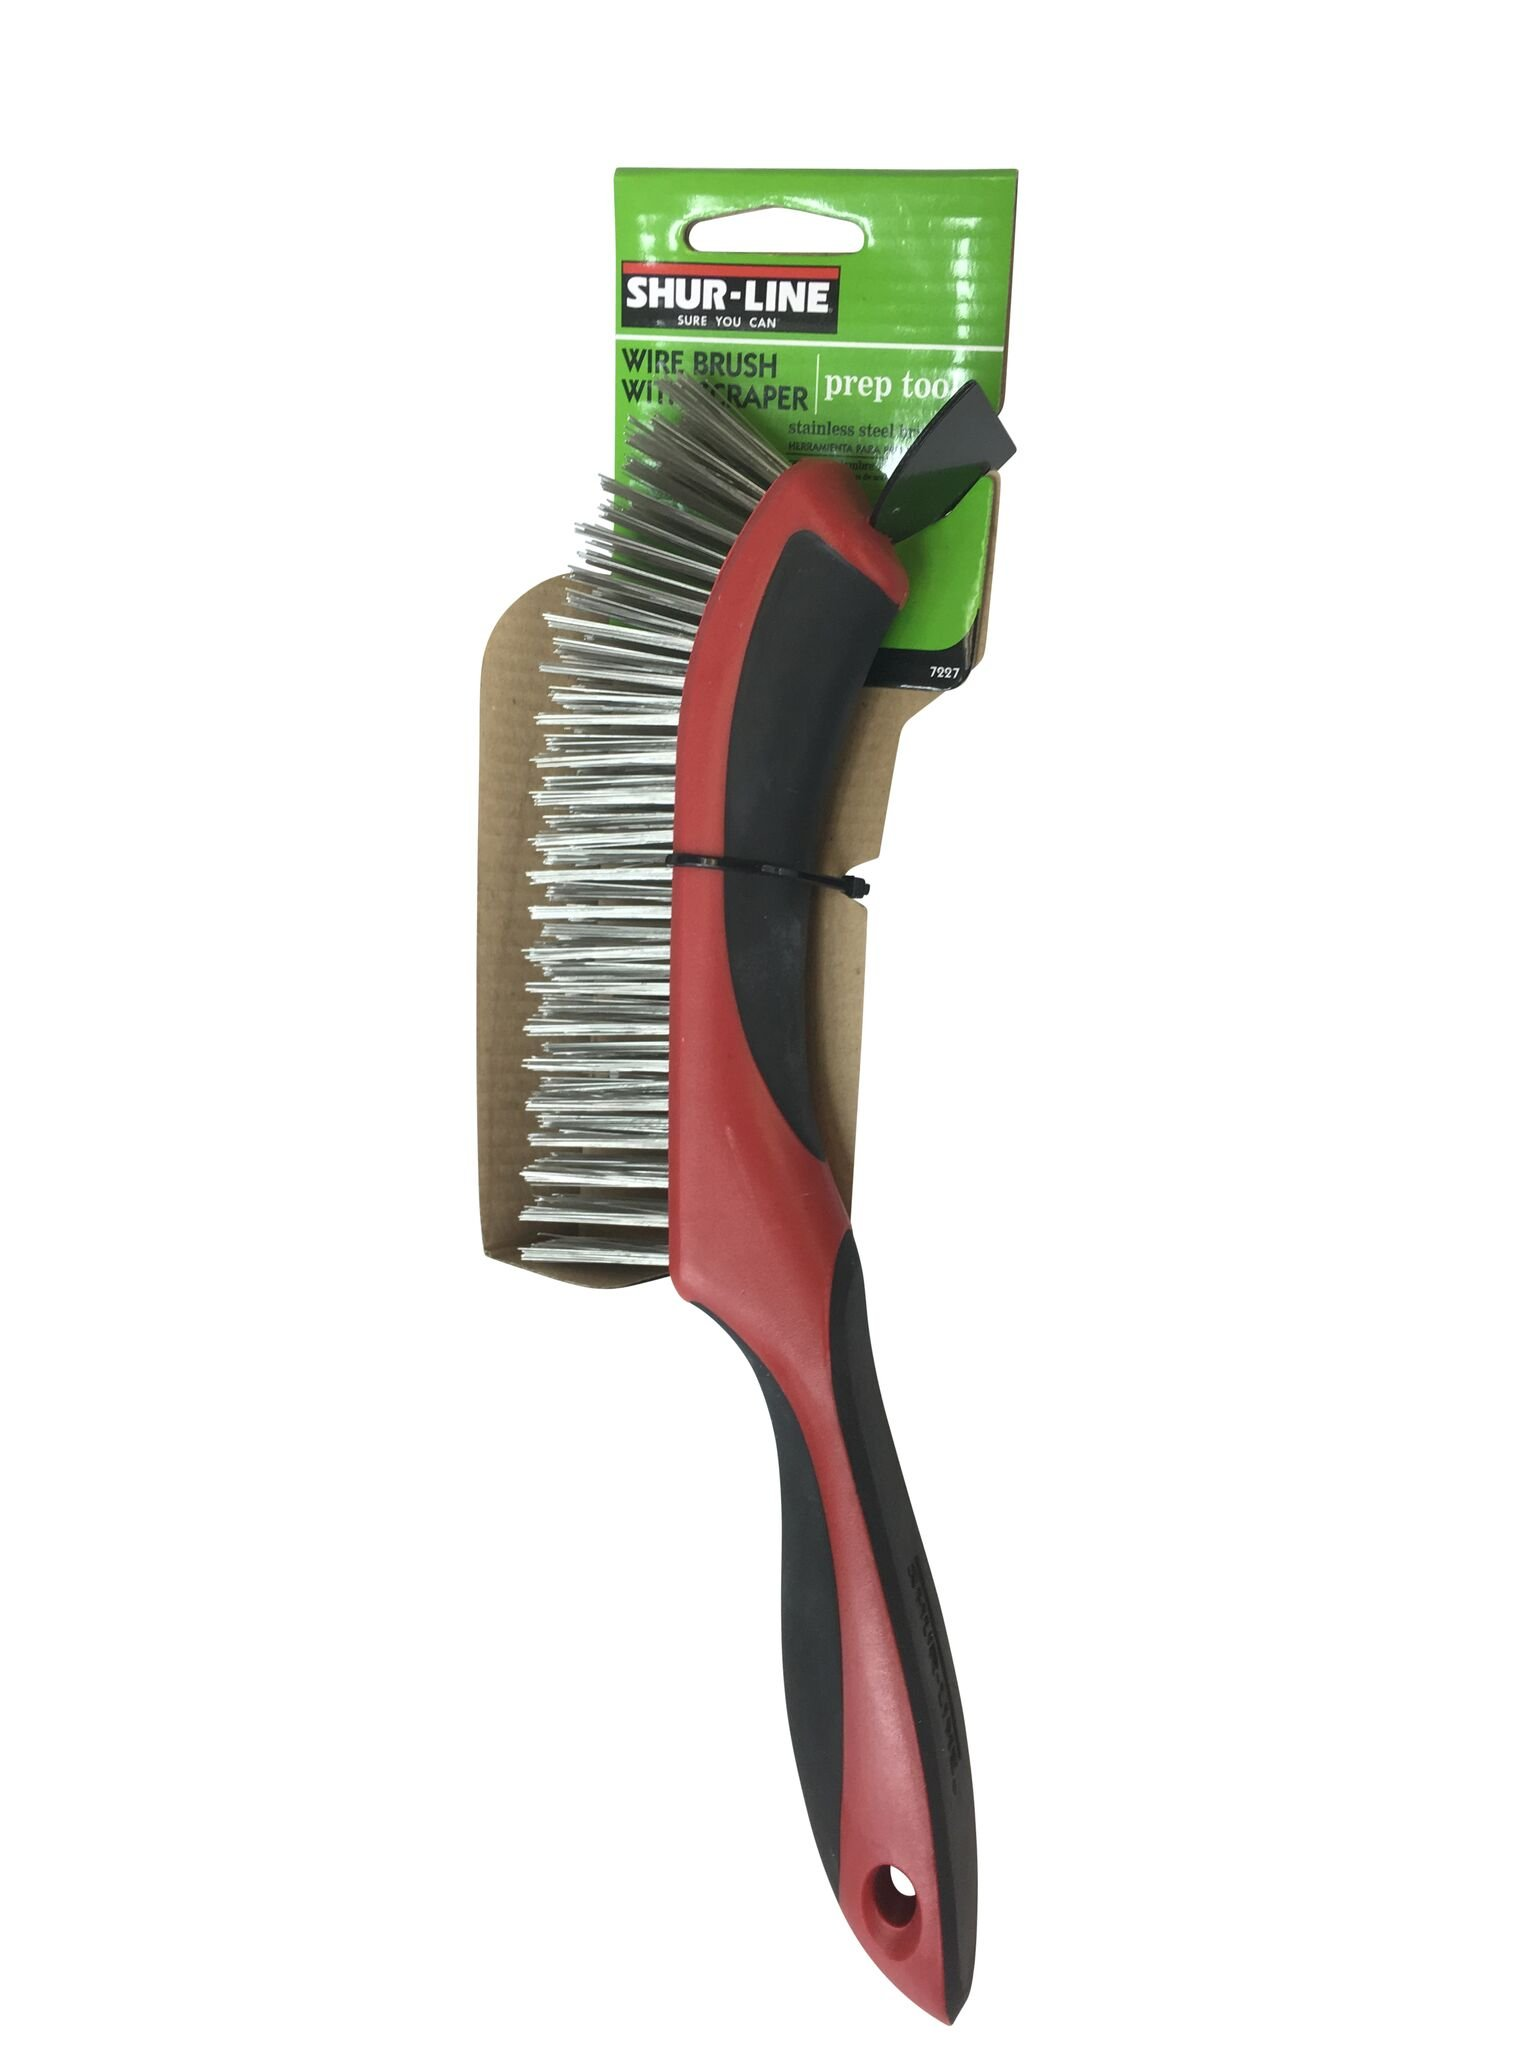 Shur-Line 7227 Premium Long Handle Wire Brush with Scraper